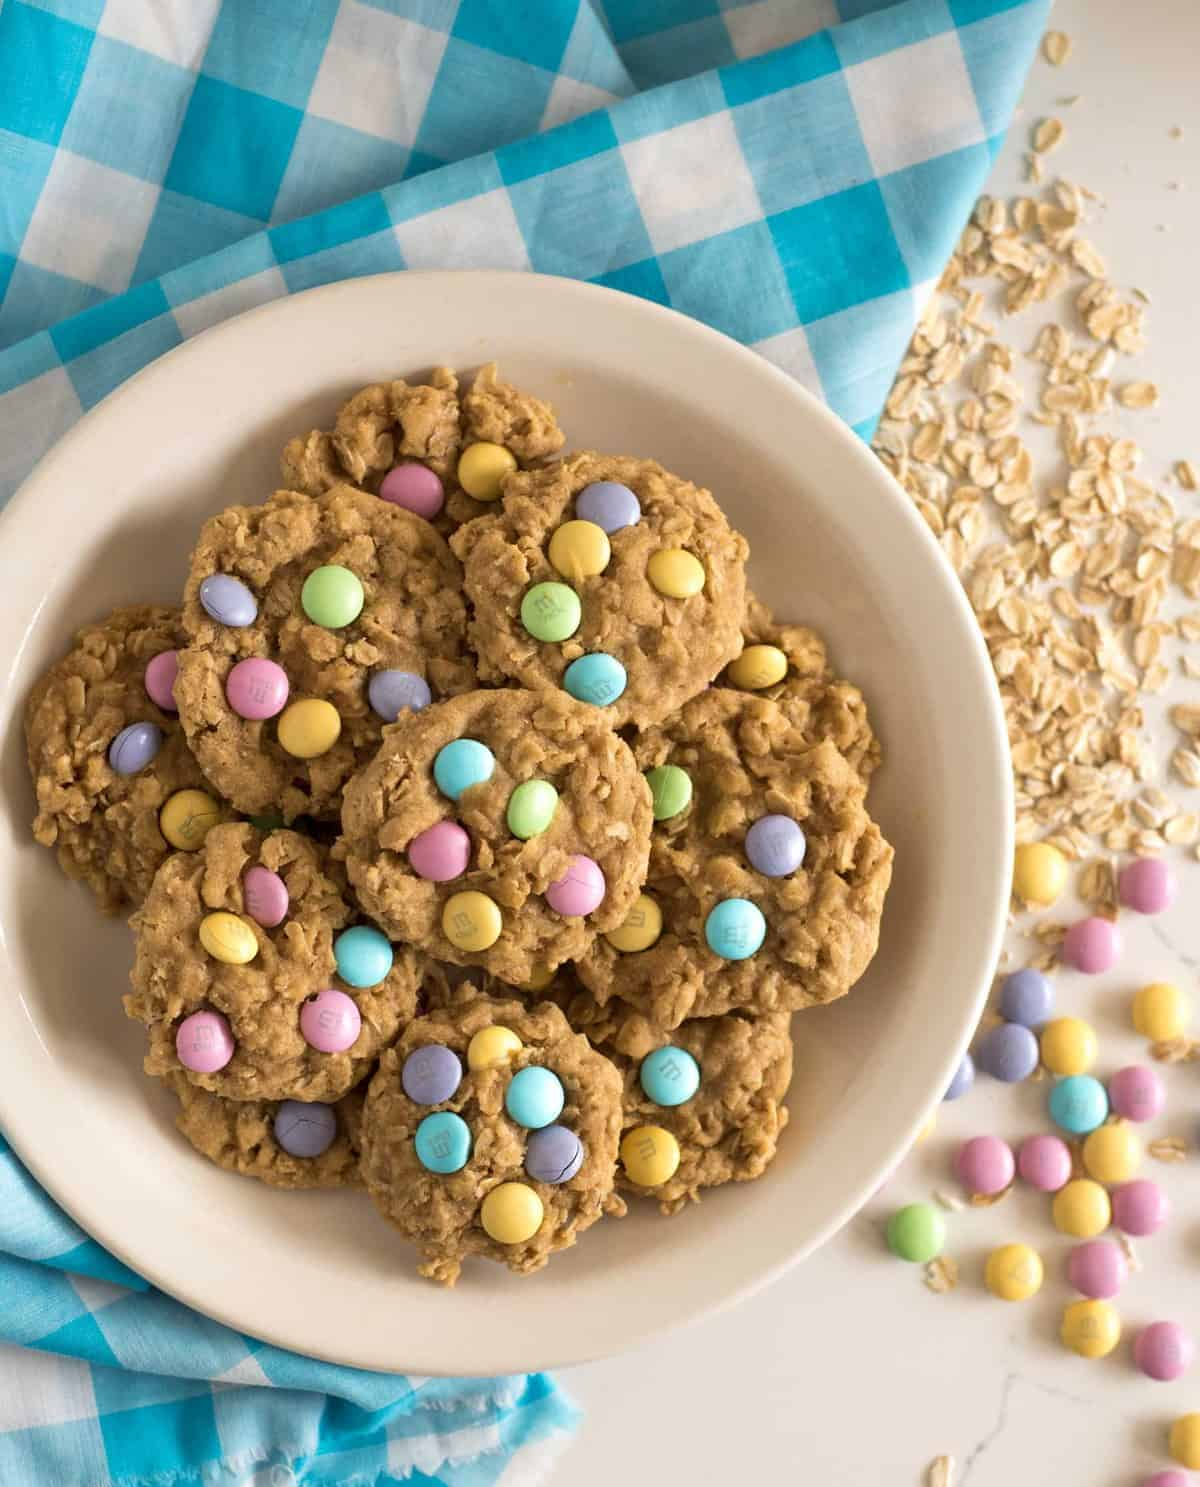 Homemade oatmeal cookies topped with colorful M&M candies to make the cutest cookies on the block; plus they taste great too!